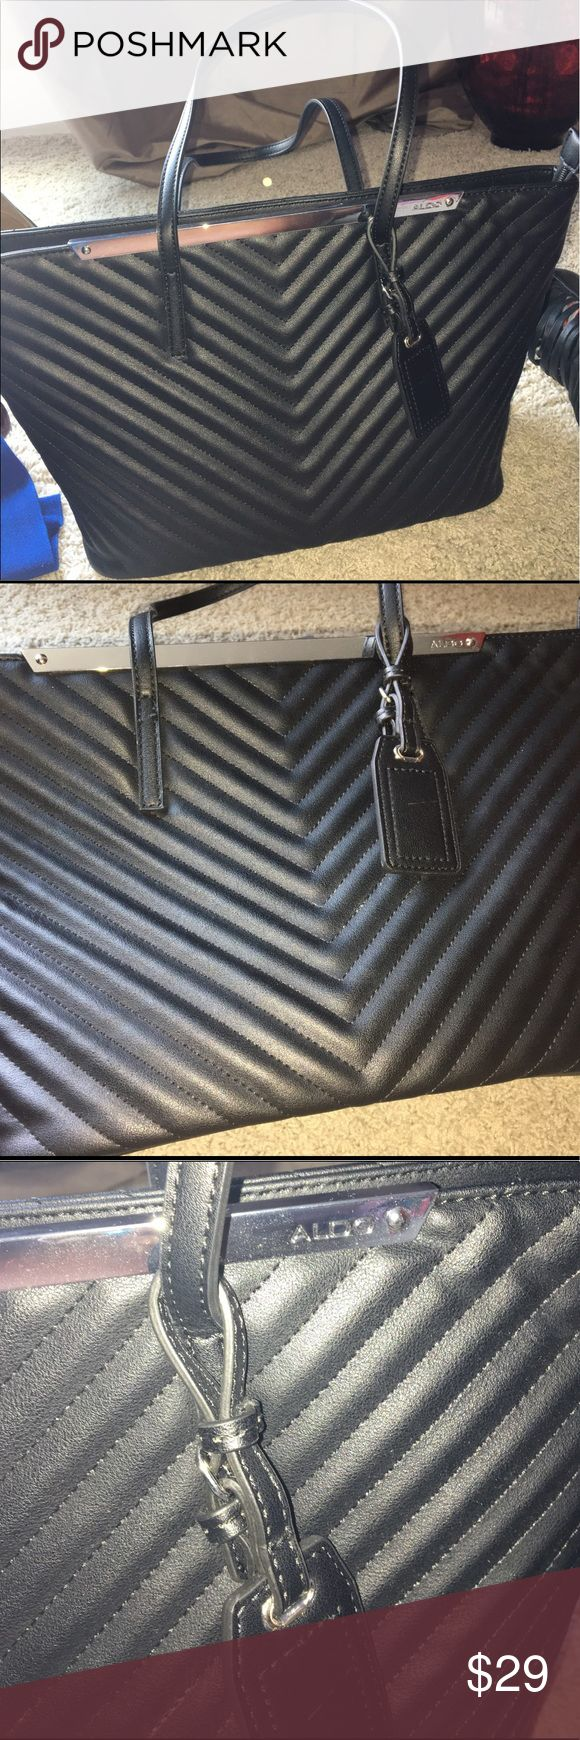 ALDO tote! Worn once great for work/everyday! ALDO Tote, worn once great for work or play. Can fit most Ipads, Kindles and room for cell phone etc. Great for work or travel as not to big! Could also be used as stylish medium sized mom bag! 🎉 Aldo Bags